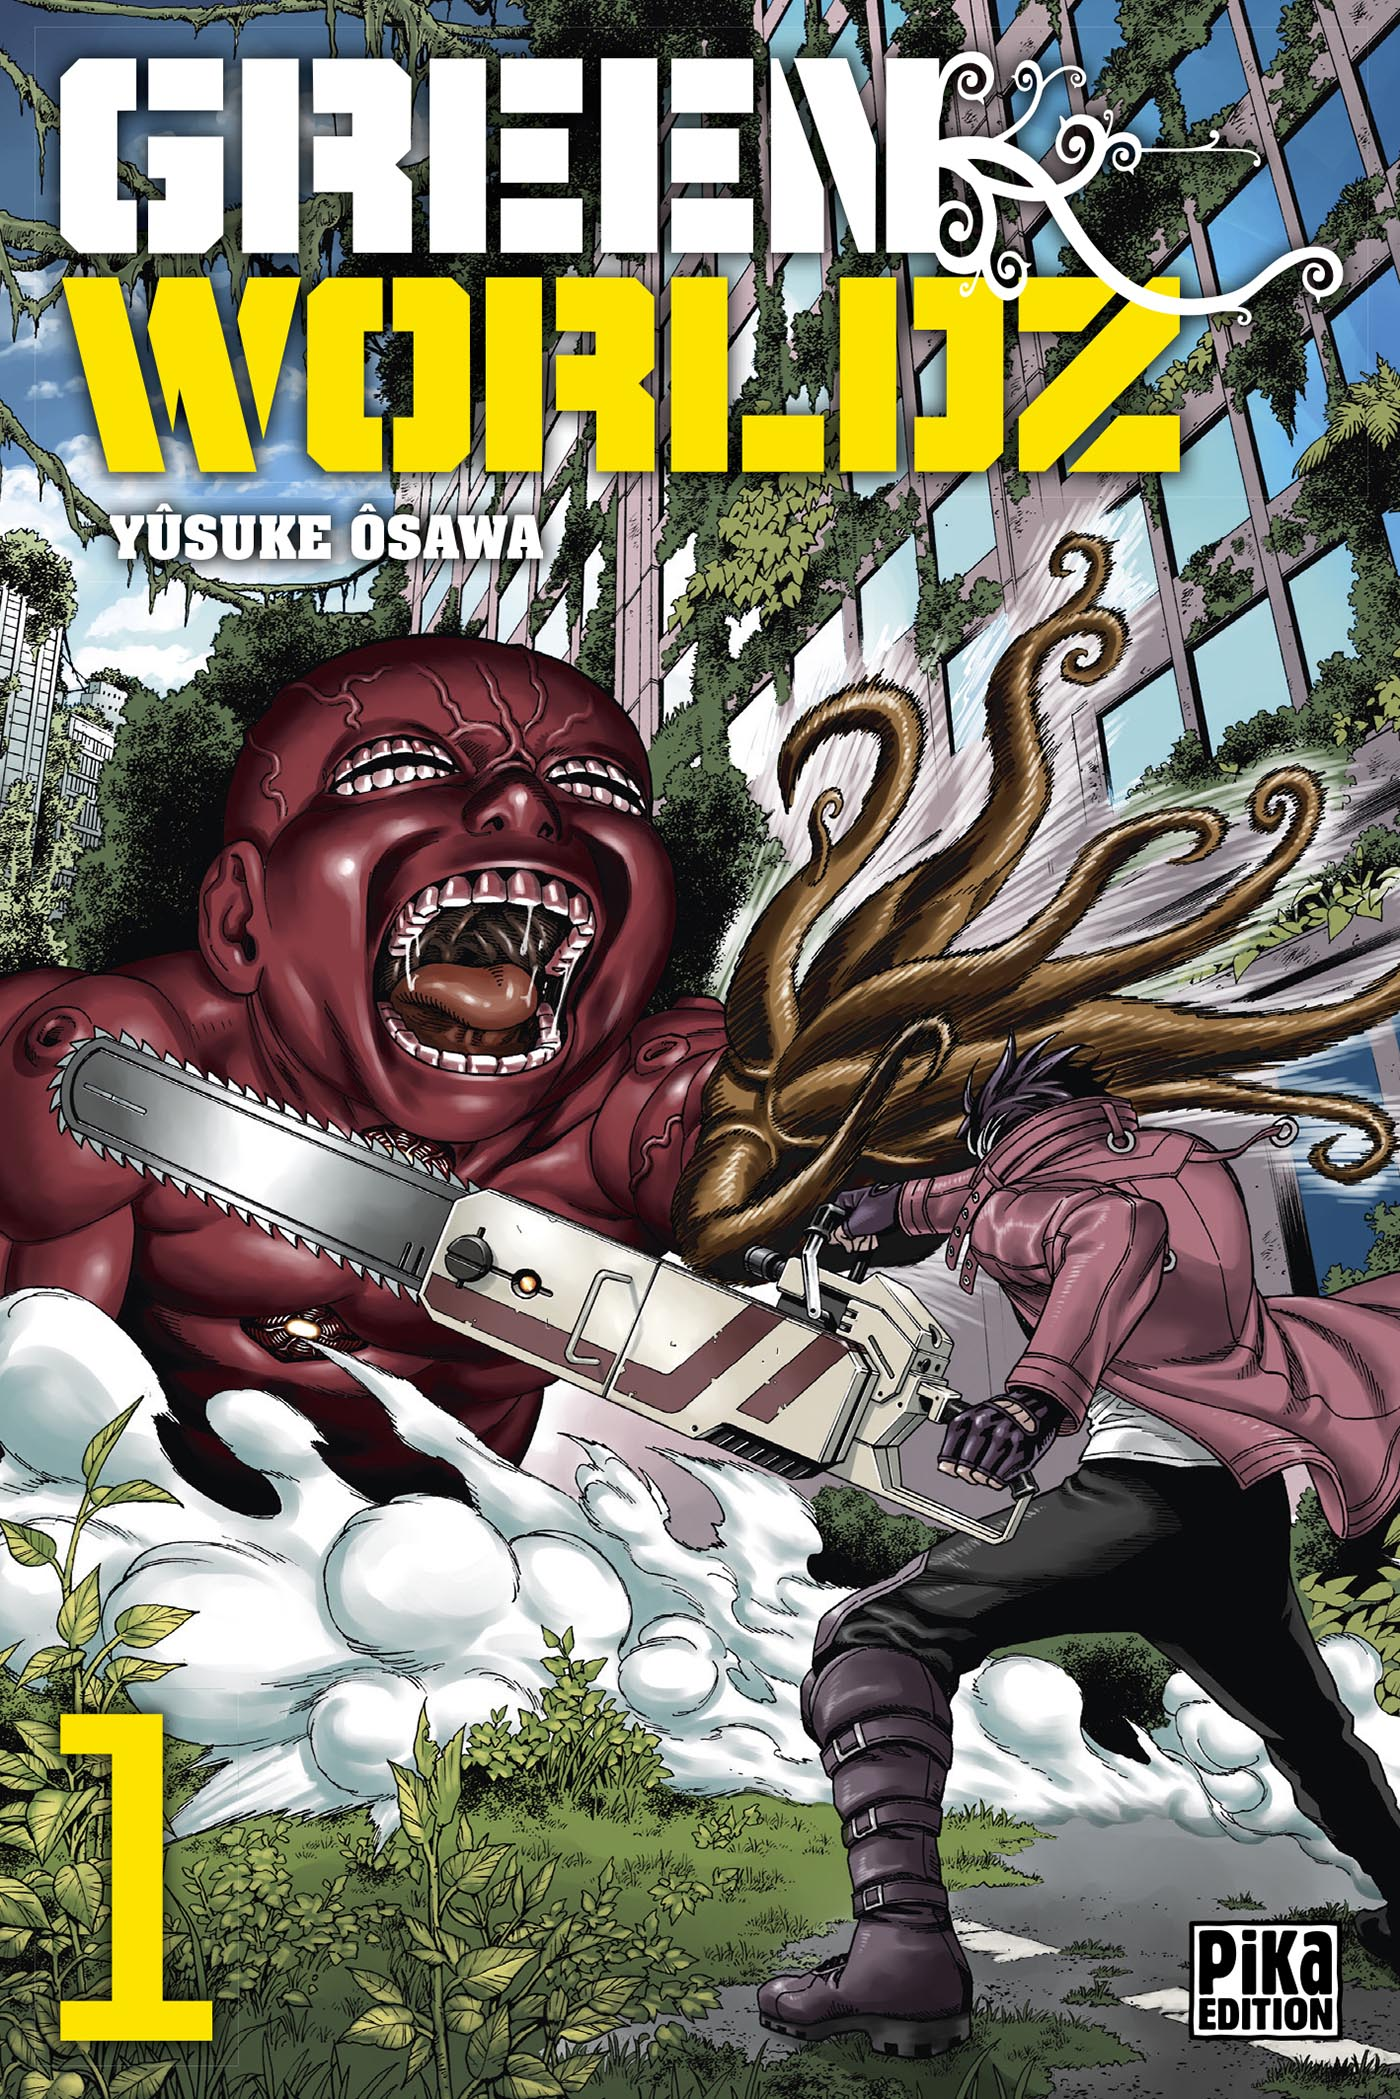 Green Worldz - Manga série - Manga news